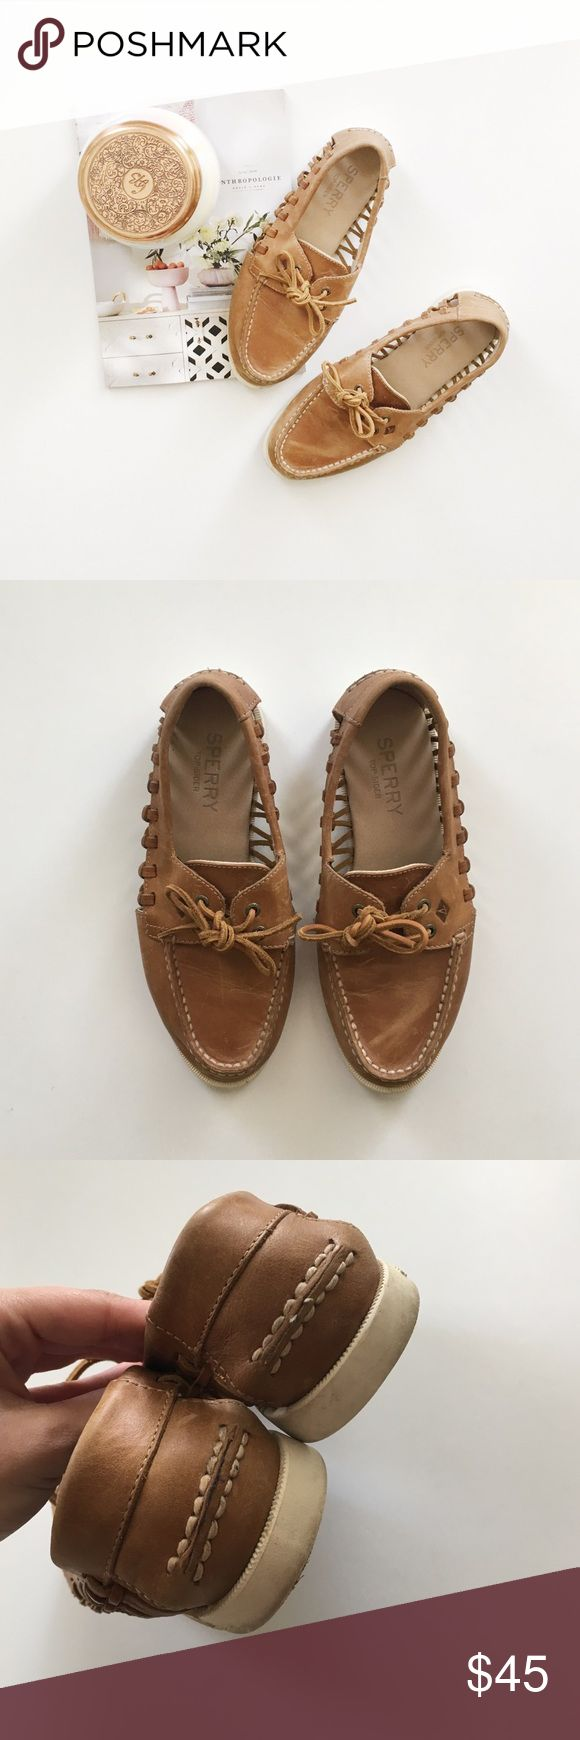 """Sperry Haven Cutout Boat Shoe In Sahara Sperry """"Haven"""" side cutout boat shoes size 7.5  • Does have some scratches and discoloration on bottom from normal wear, price is reflected! • In great used condition with no major flaws • Great for spring and summer! • Make an offer! Sperry Shoes Flats & Loafers"""